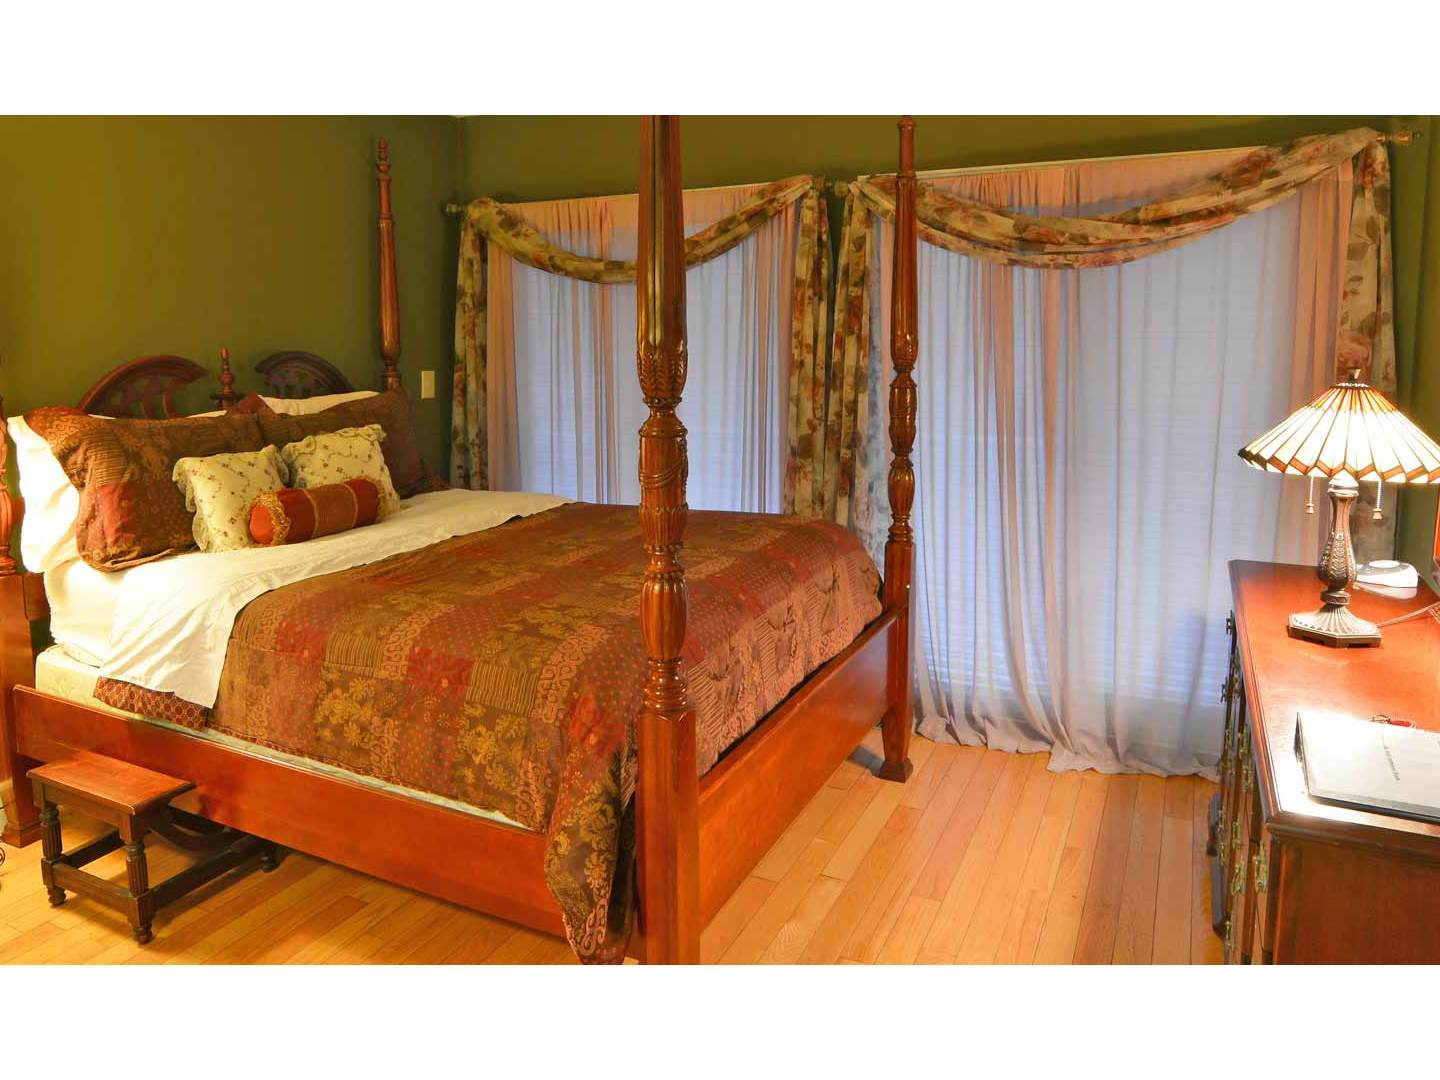 A bedroom with a bed in a room at Pilot Knob Inn.